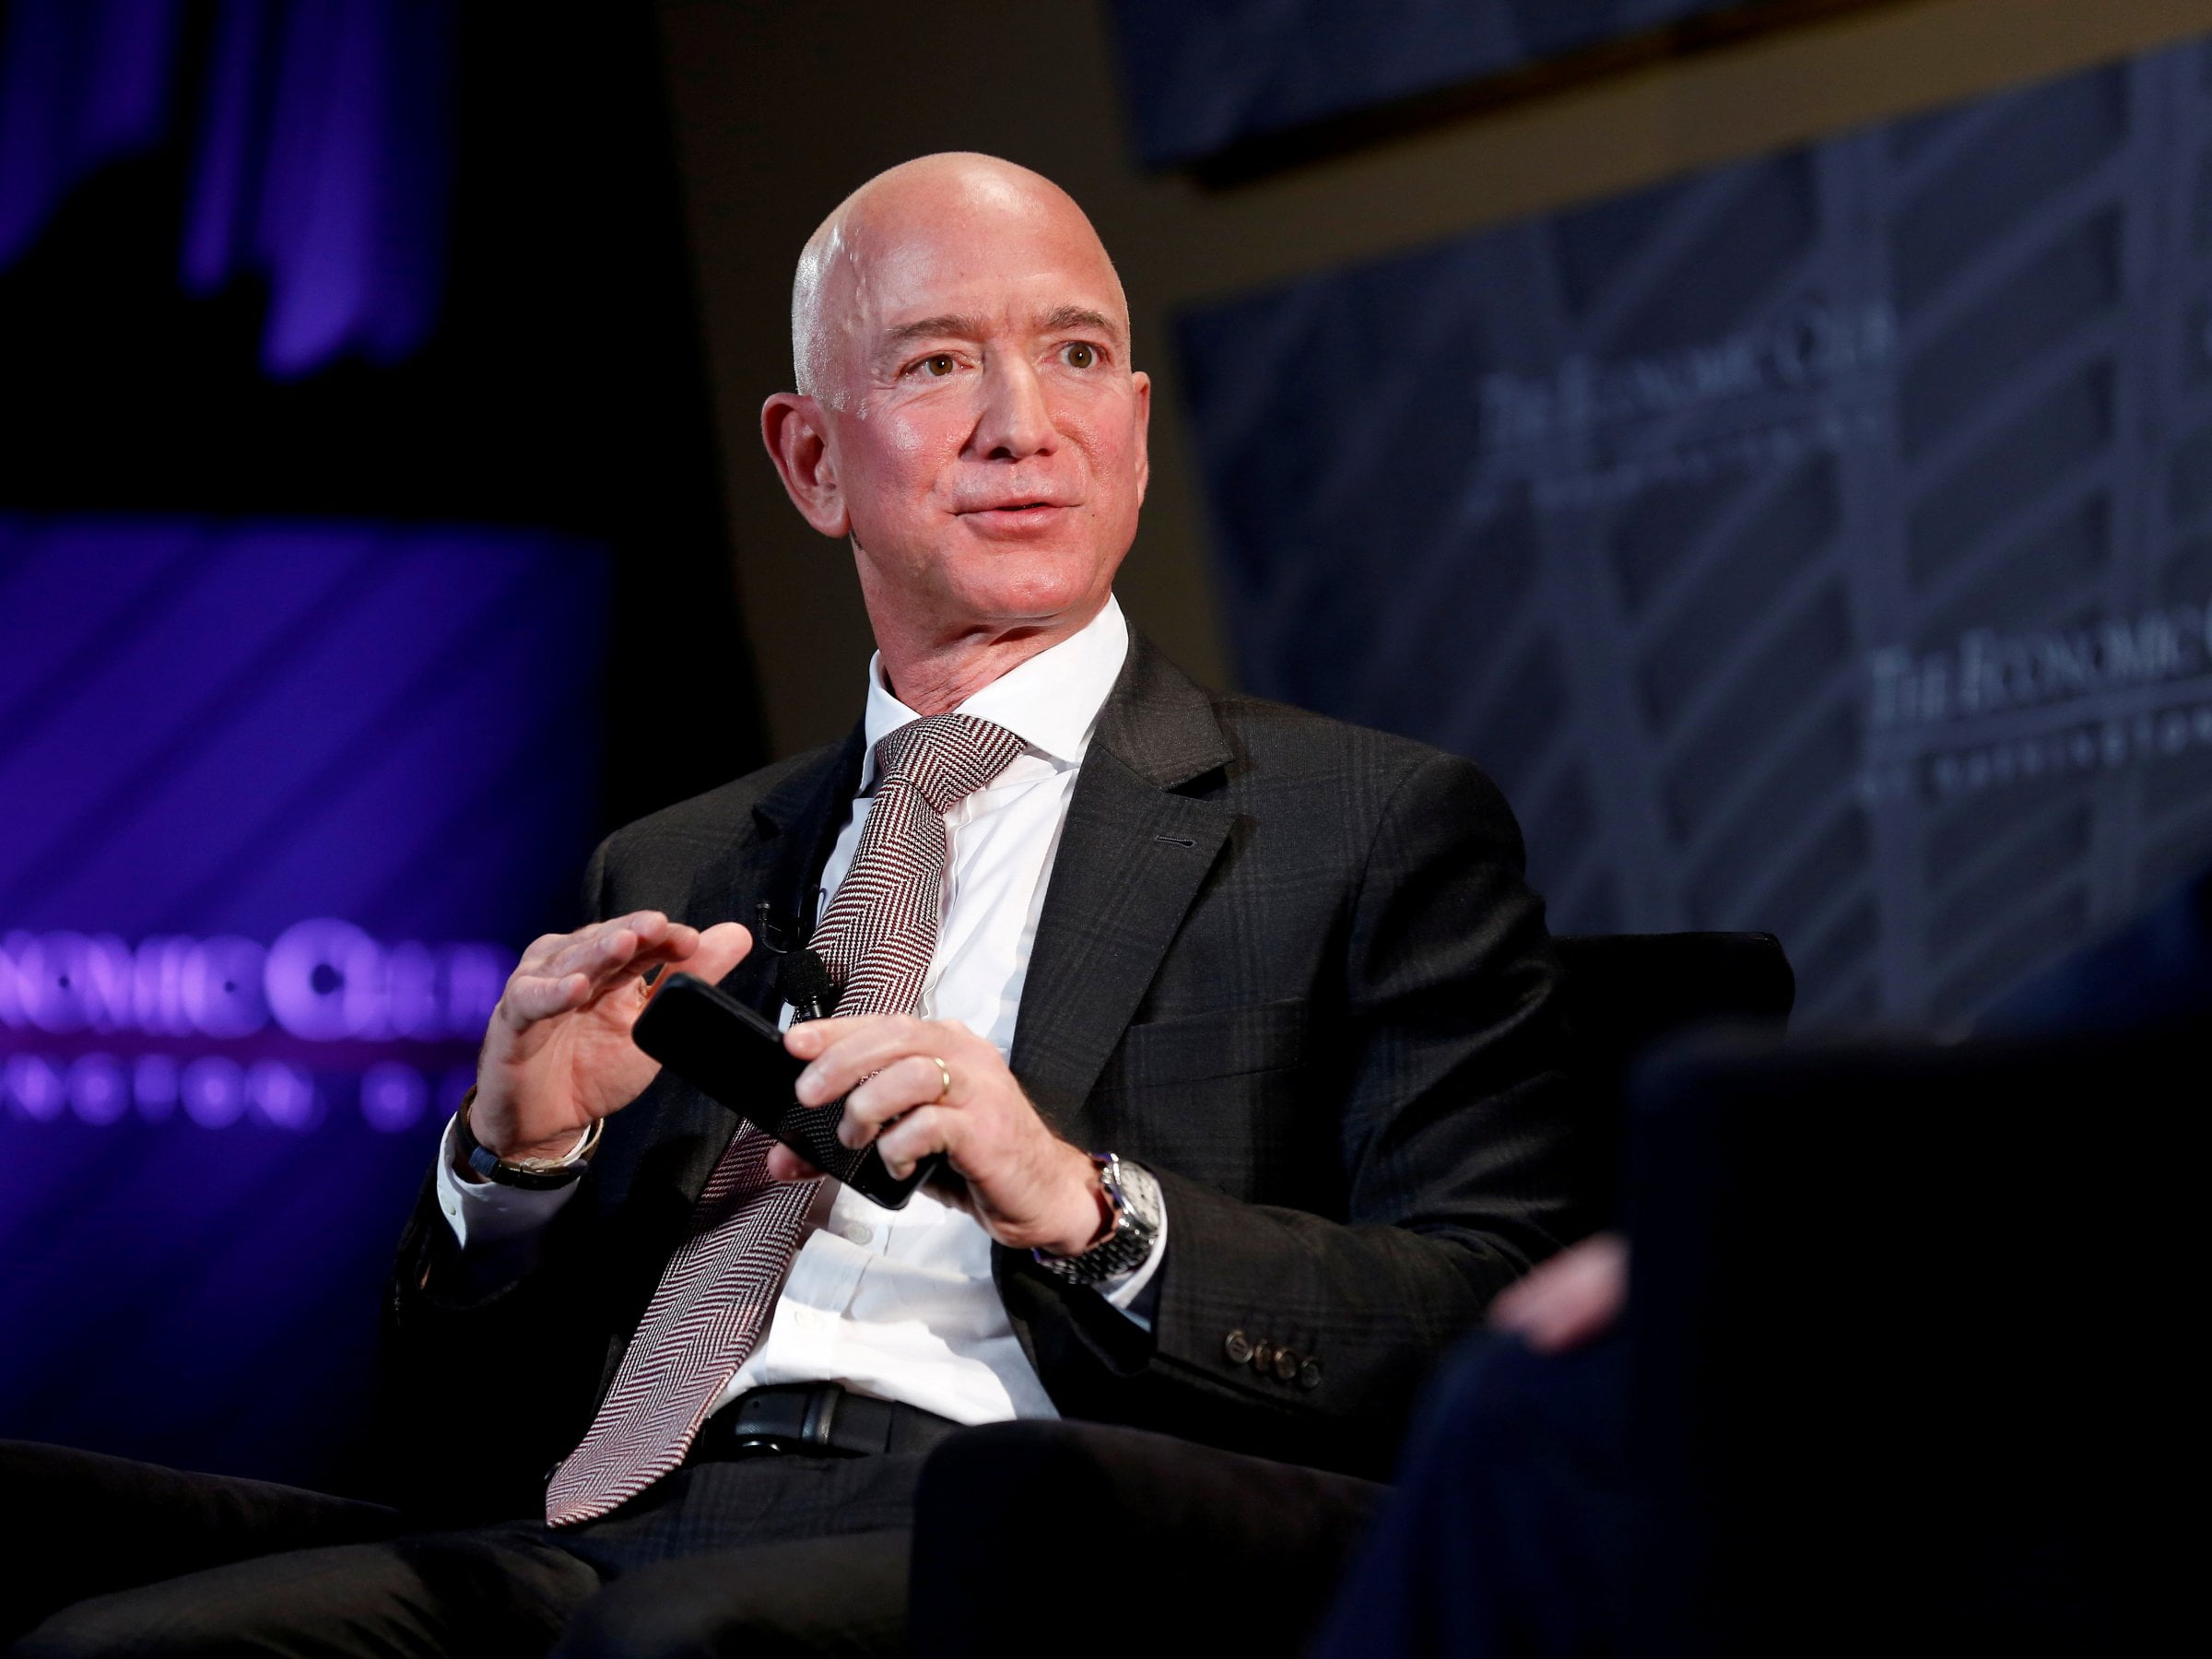 FILE PHOTO: Jeff Bezos, president and CEO of Amazon and owner of The Washington Post, speaks at the Economic Club of Washington DC's